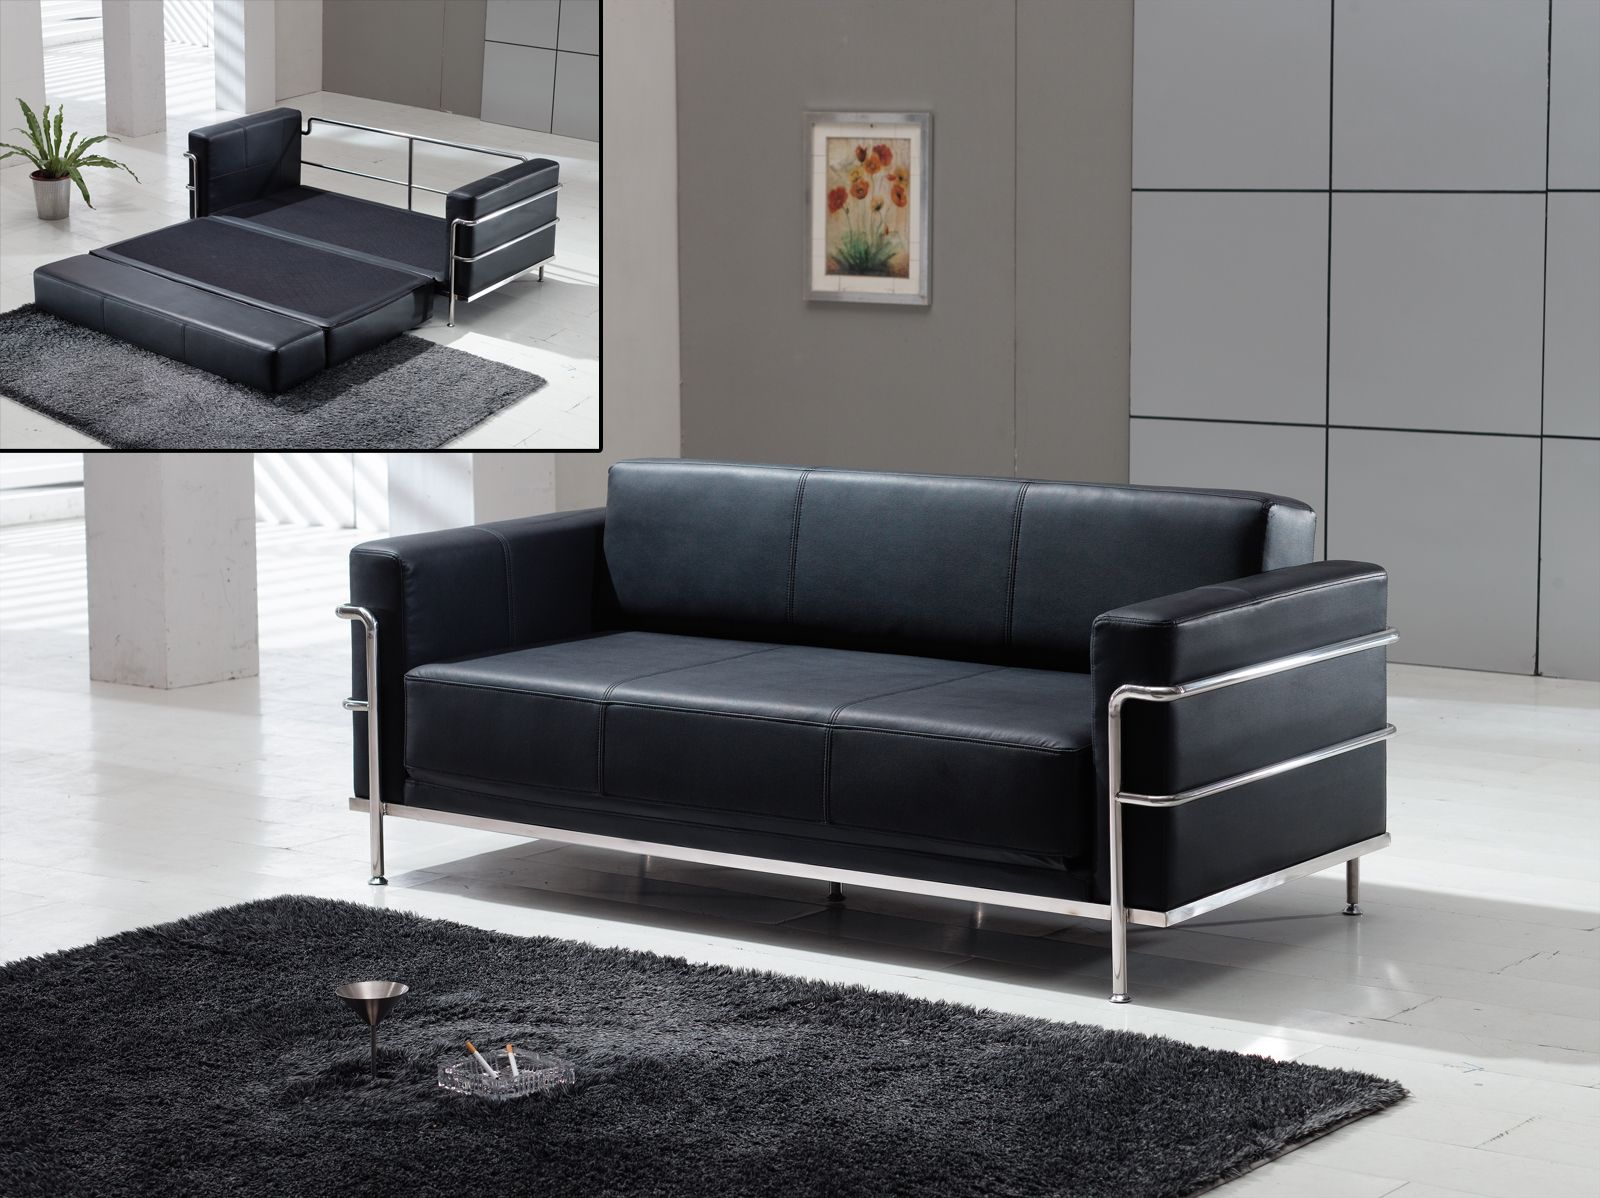 Le Corbusier Style - Black Leather Sofa Bed Sleeper | Apartment ...